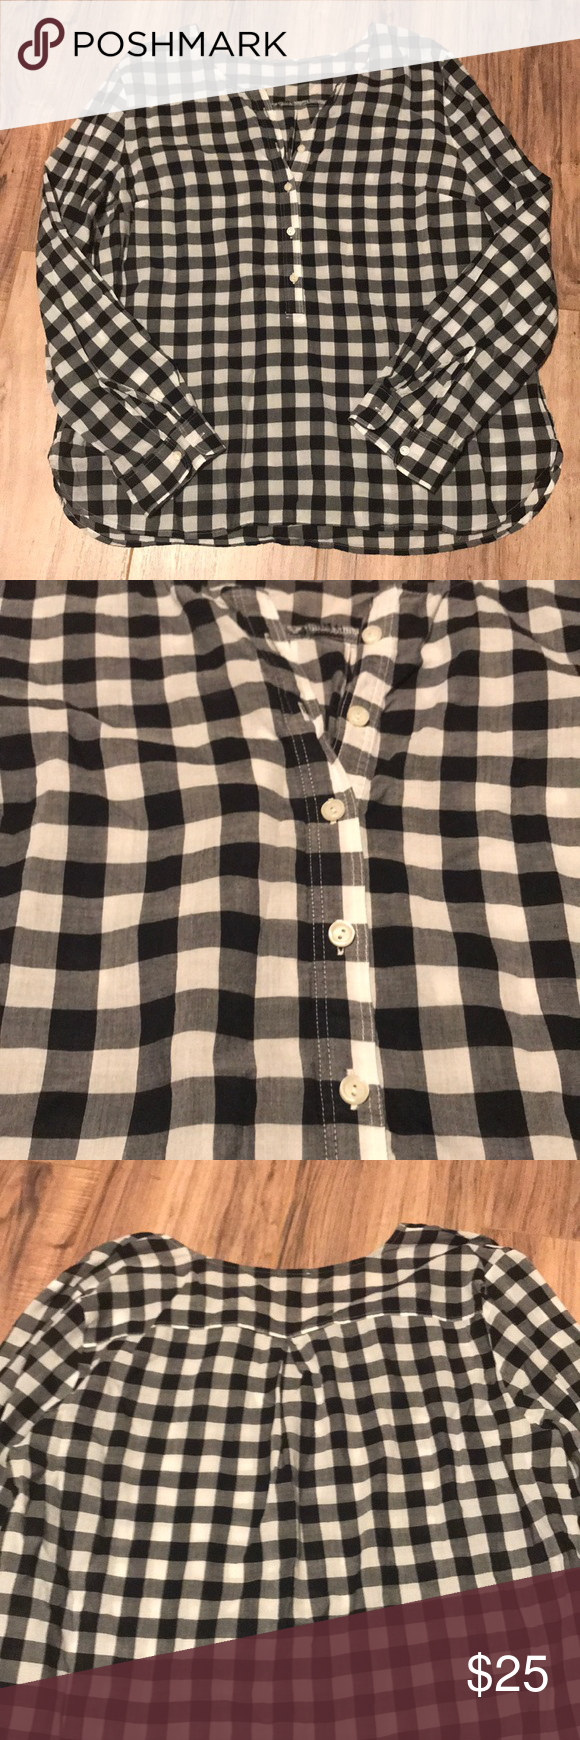 Gingham popover Great condition! Petite large! I cut the tags out because they bothered me! From Talbots! Talbots Tops Blouses